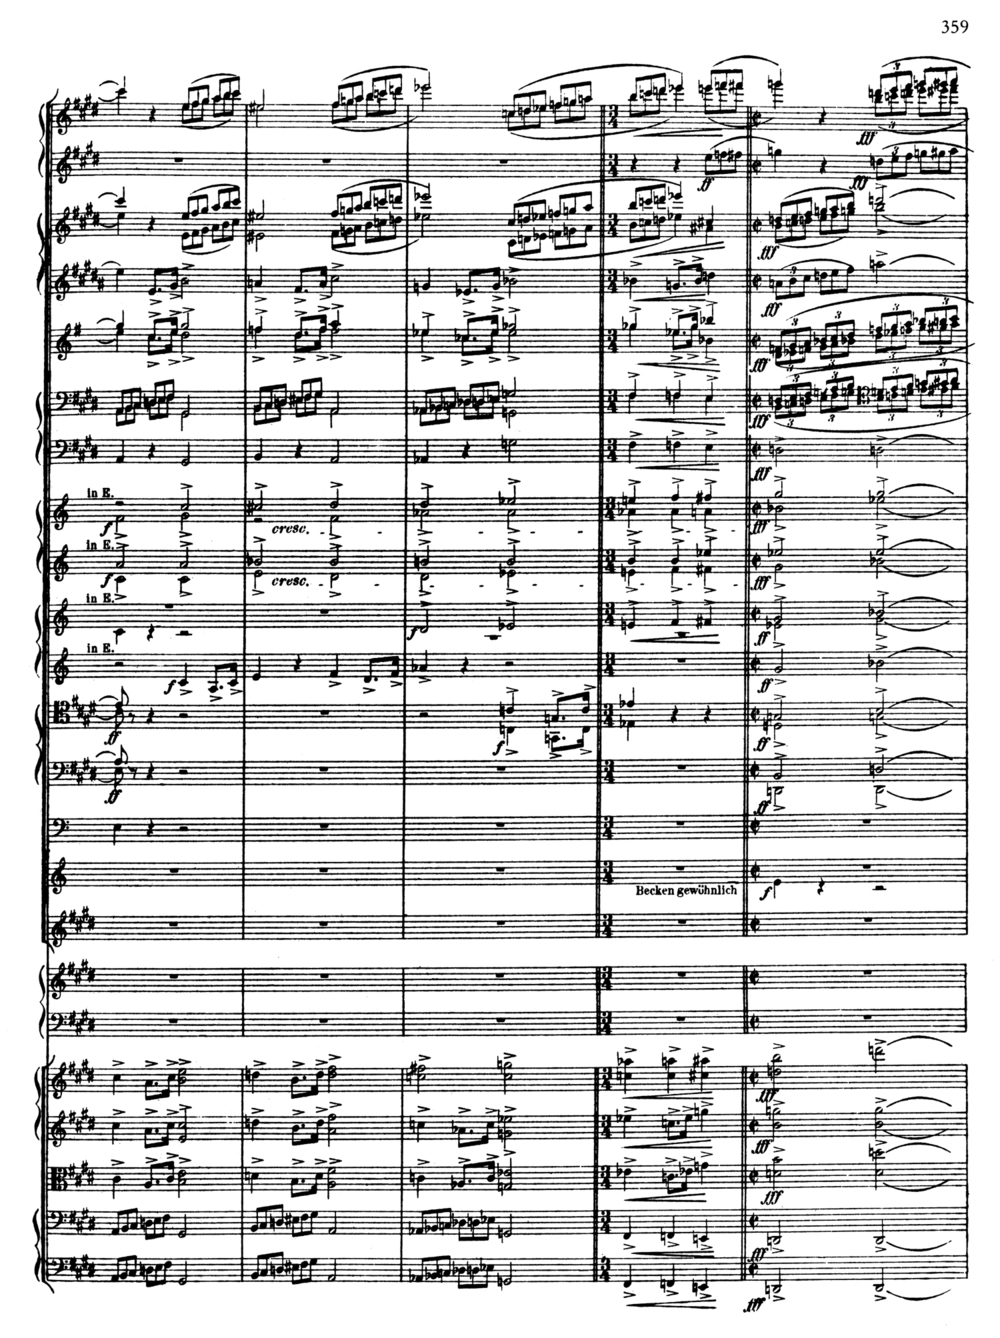 Strauss Don Juan Score 2.jpg